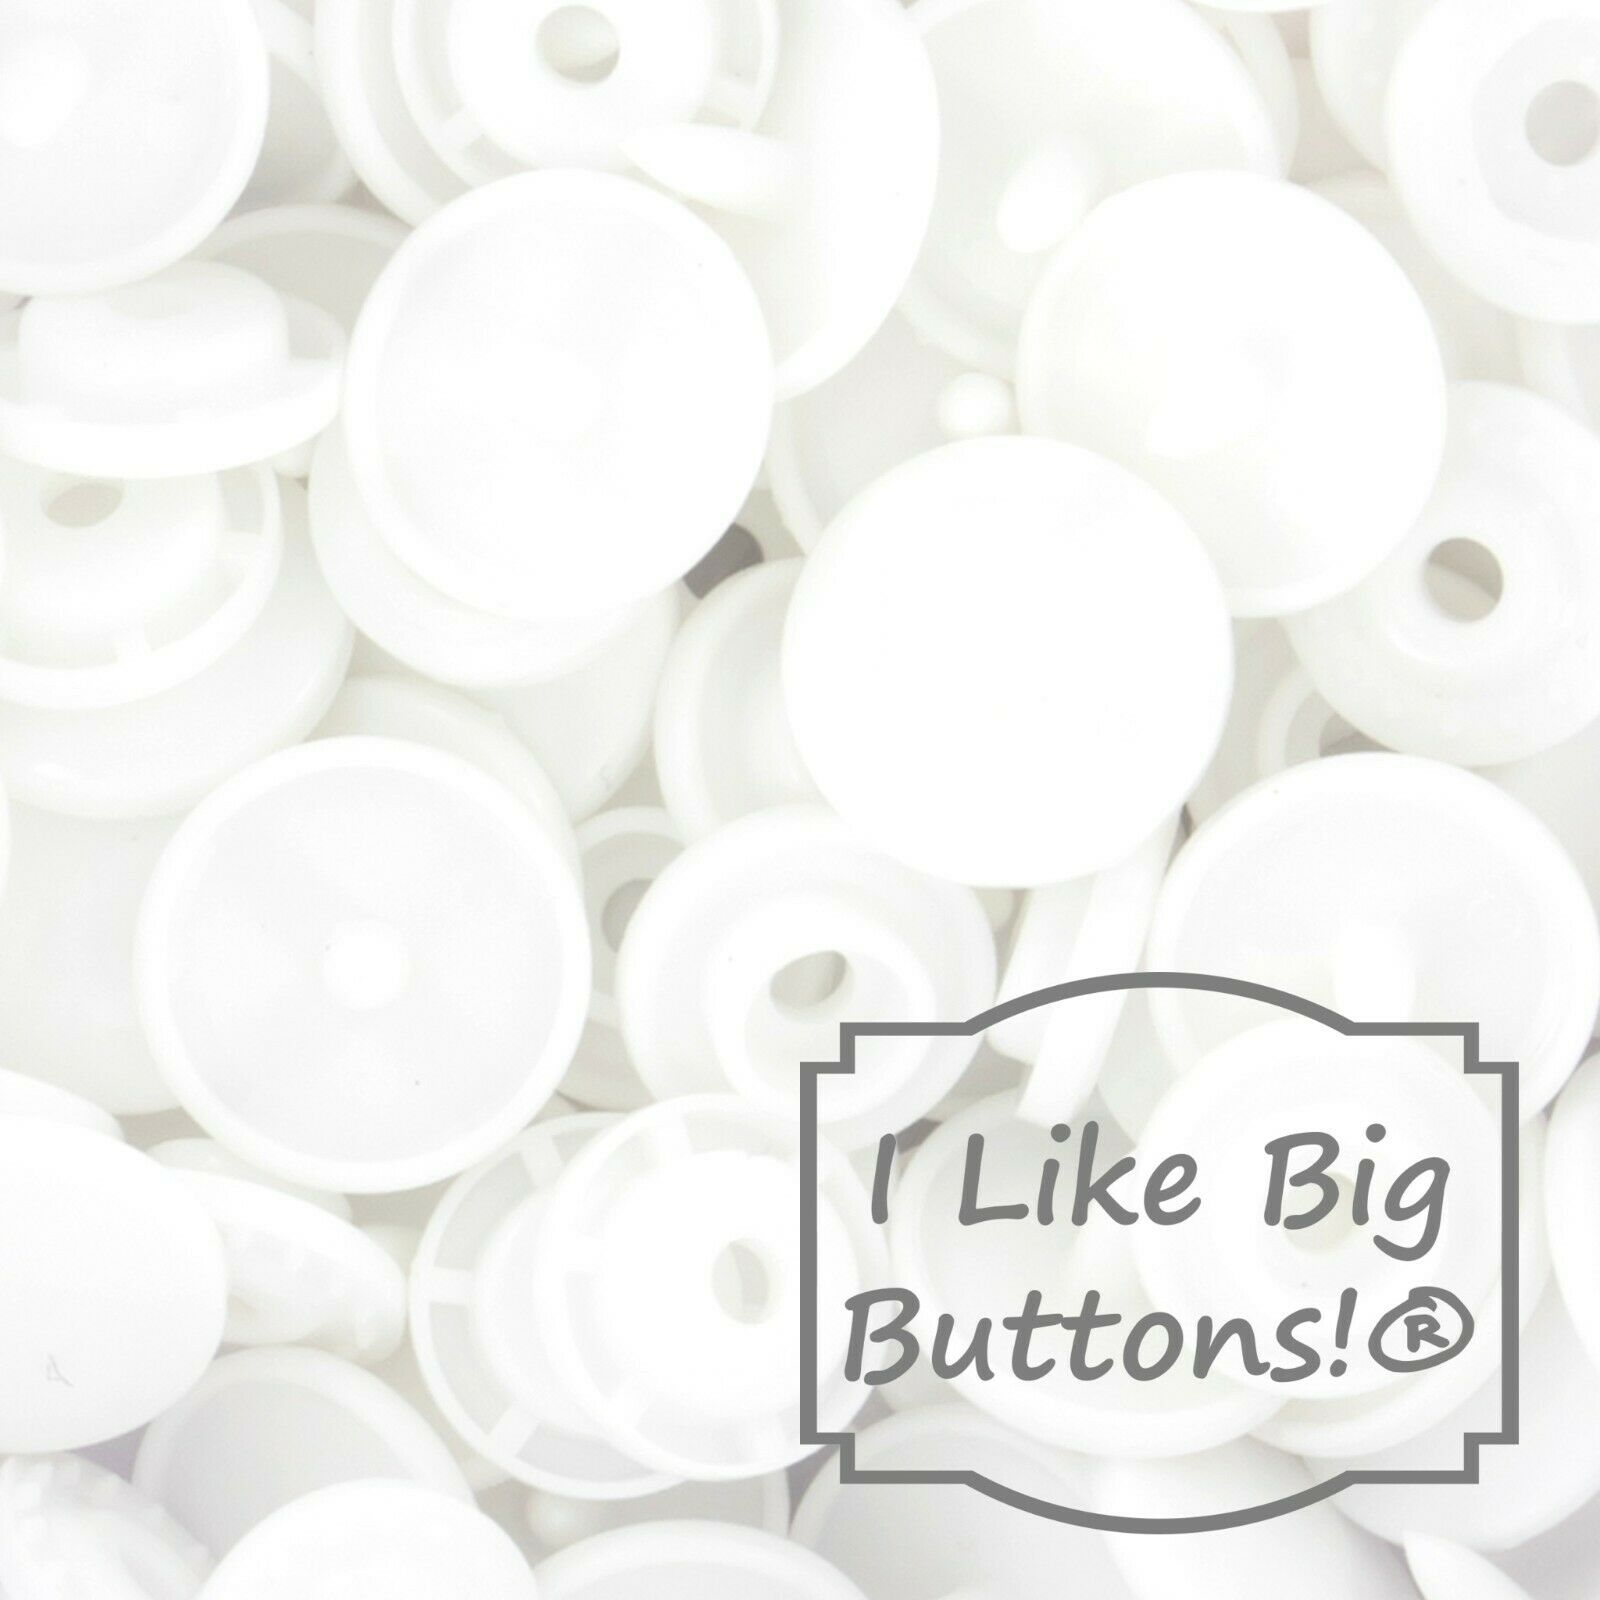 50 Kam Plasticresin Snaps For Cloth Diapersbaby Bibsbumgenius